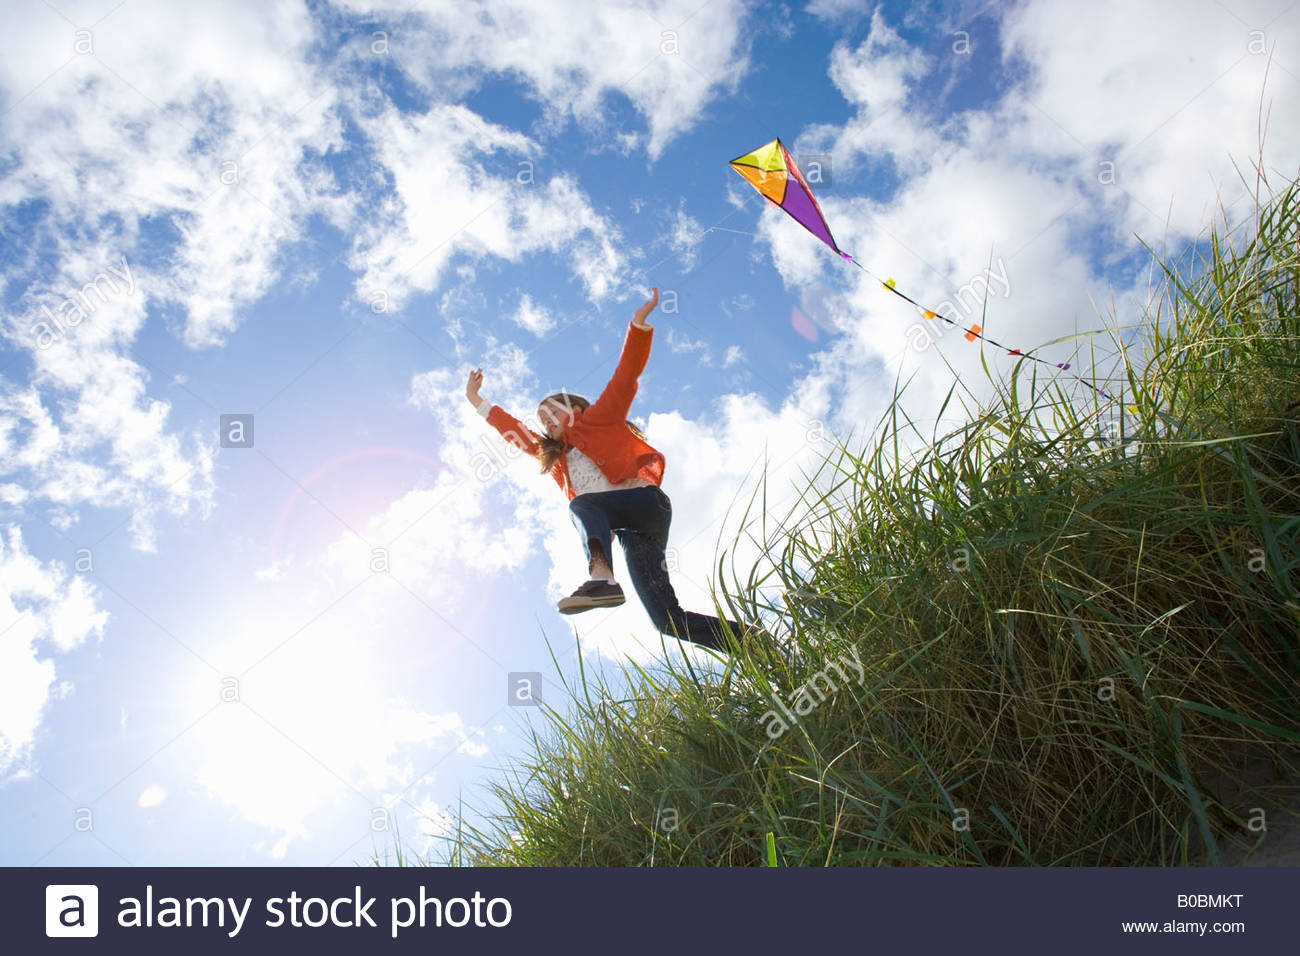 Girl 7-9 years flying kite outdoors, low angle view - Stock Image